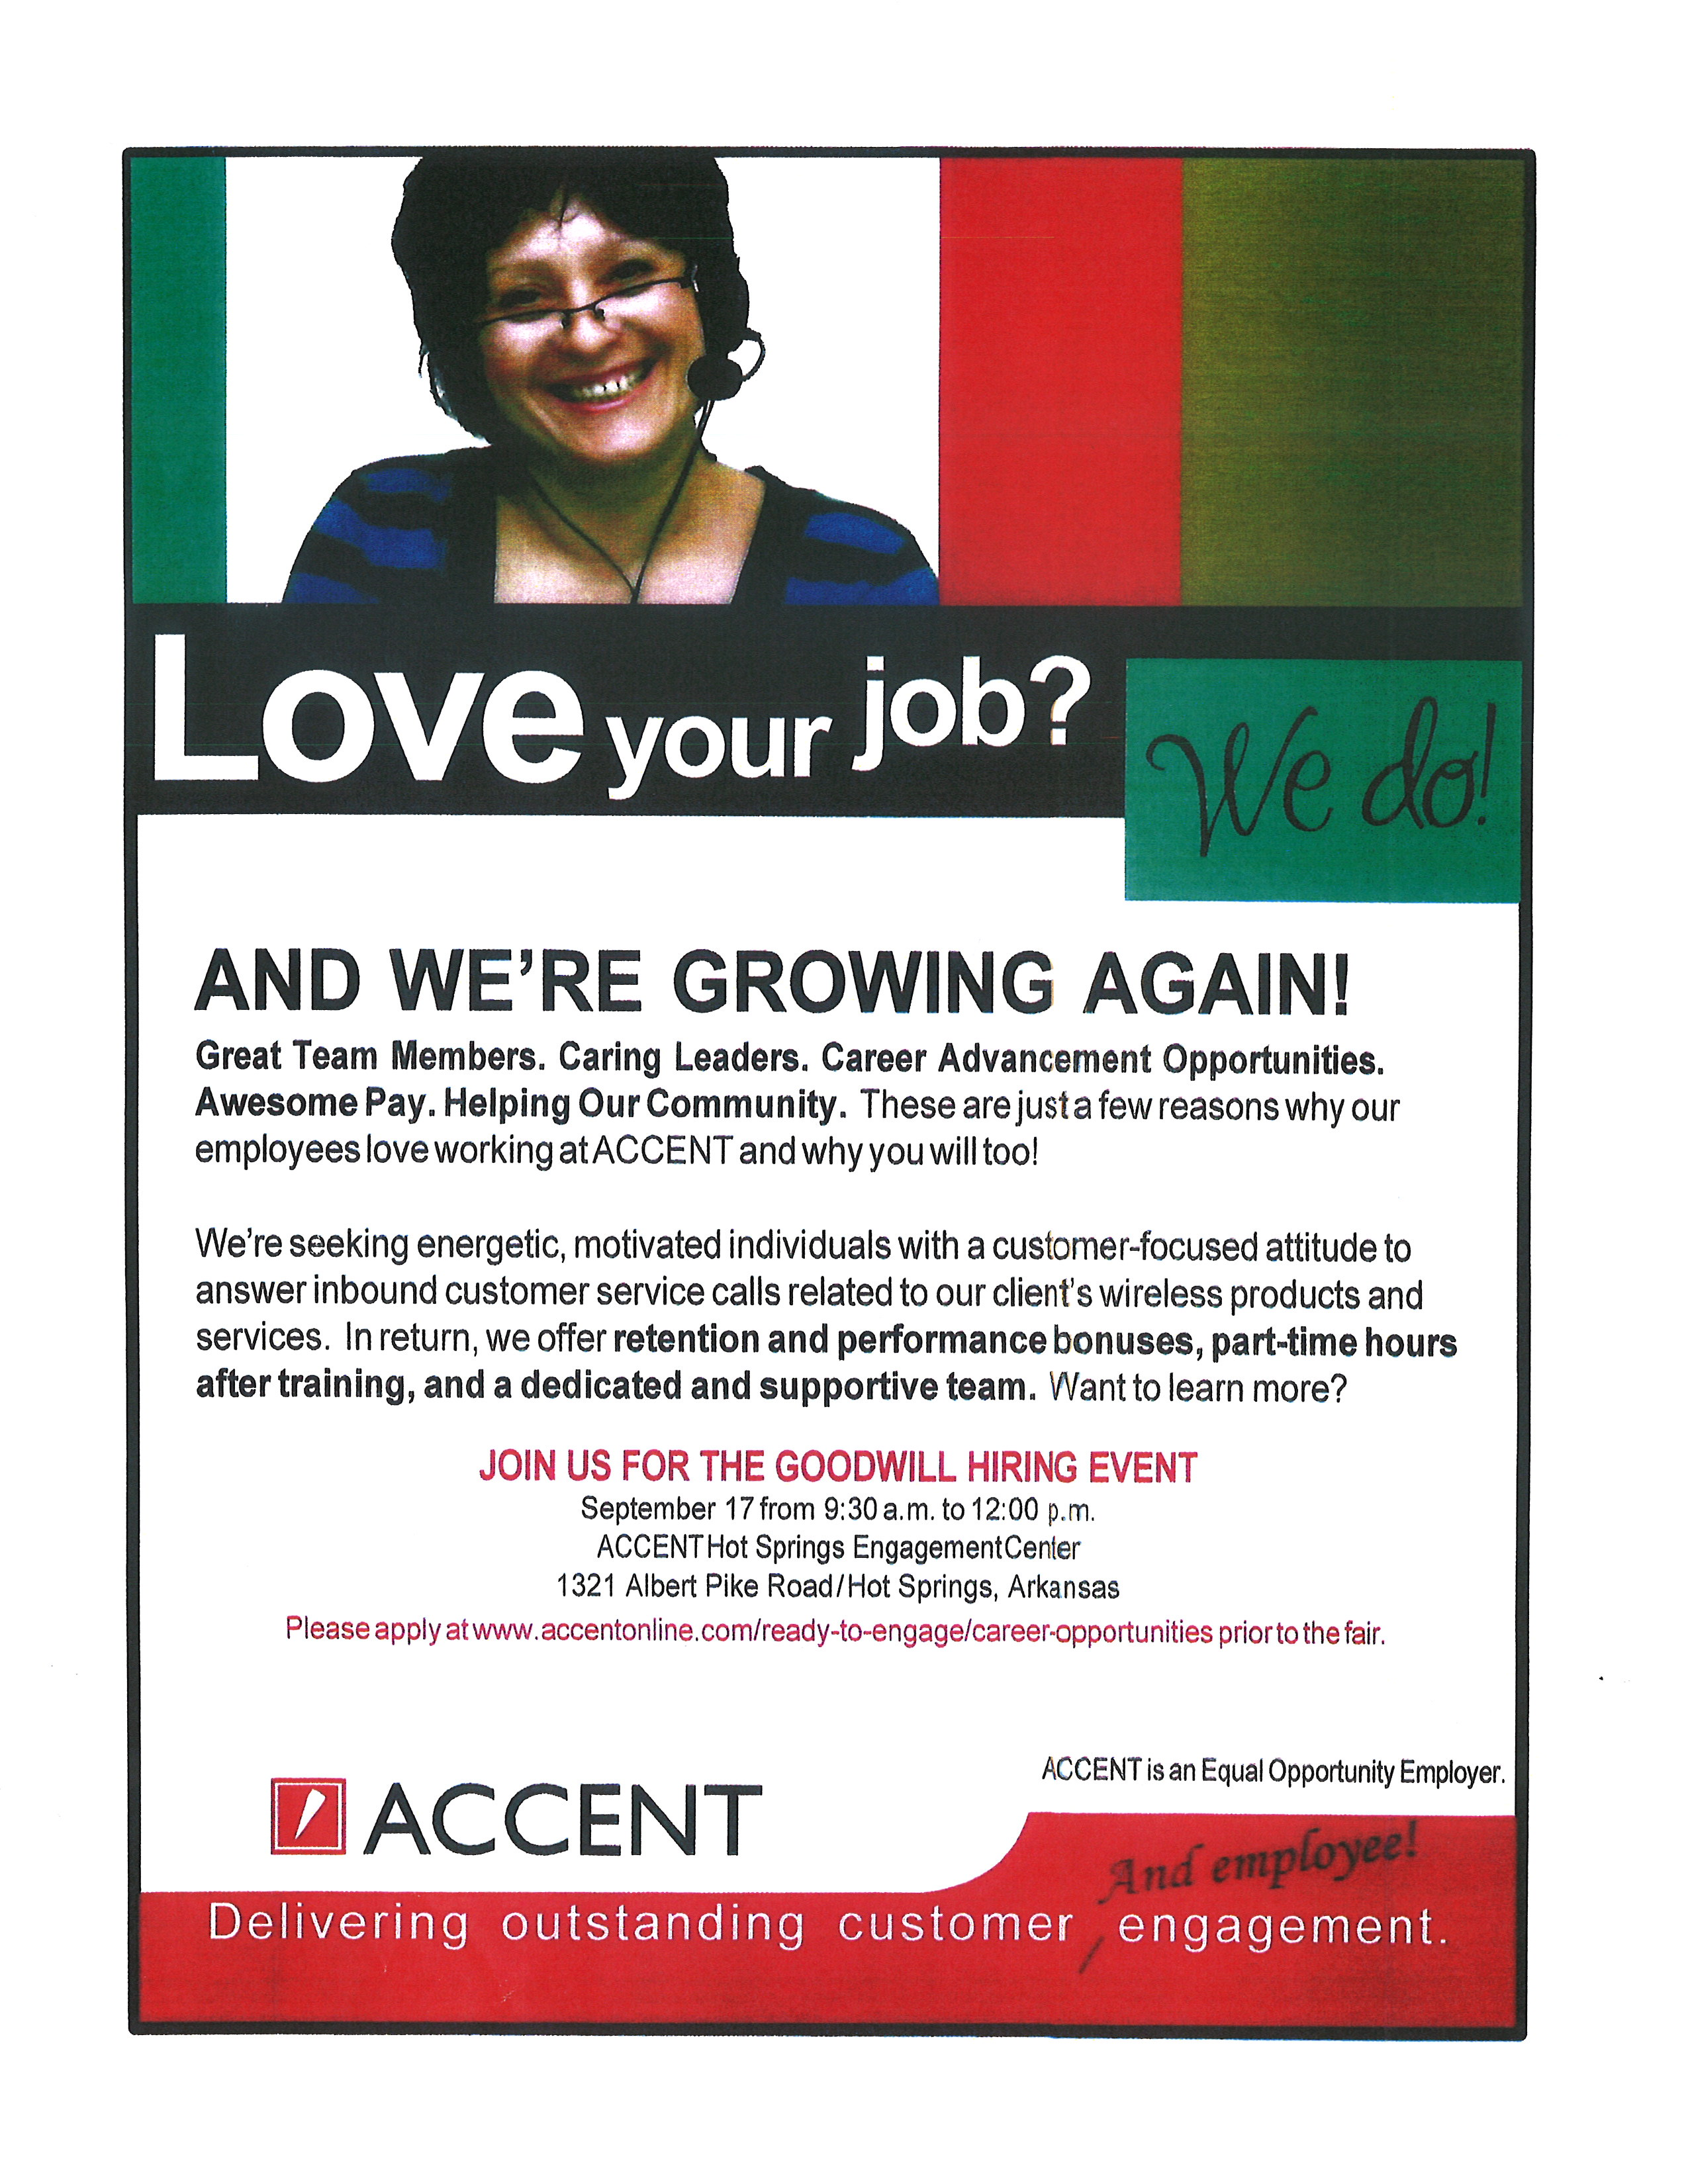 About Accent Marketing Accent